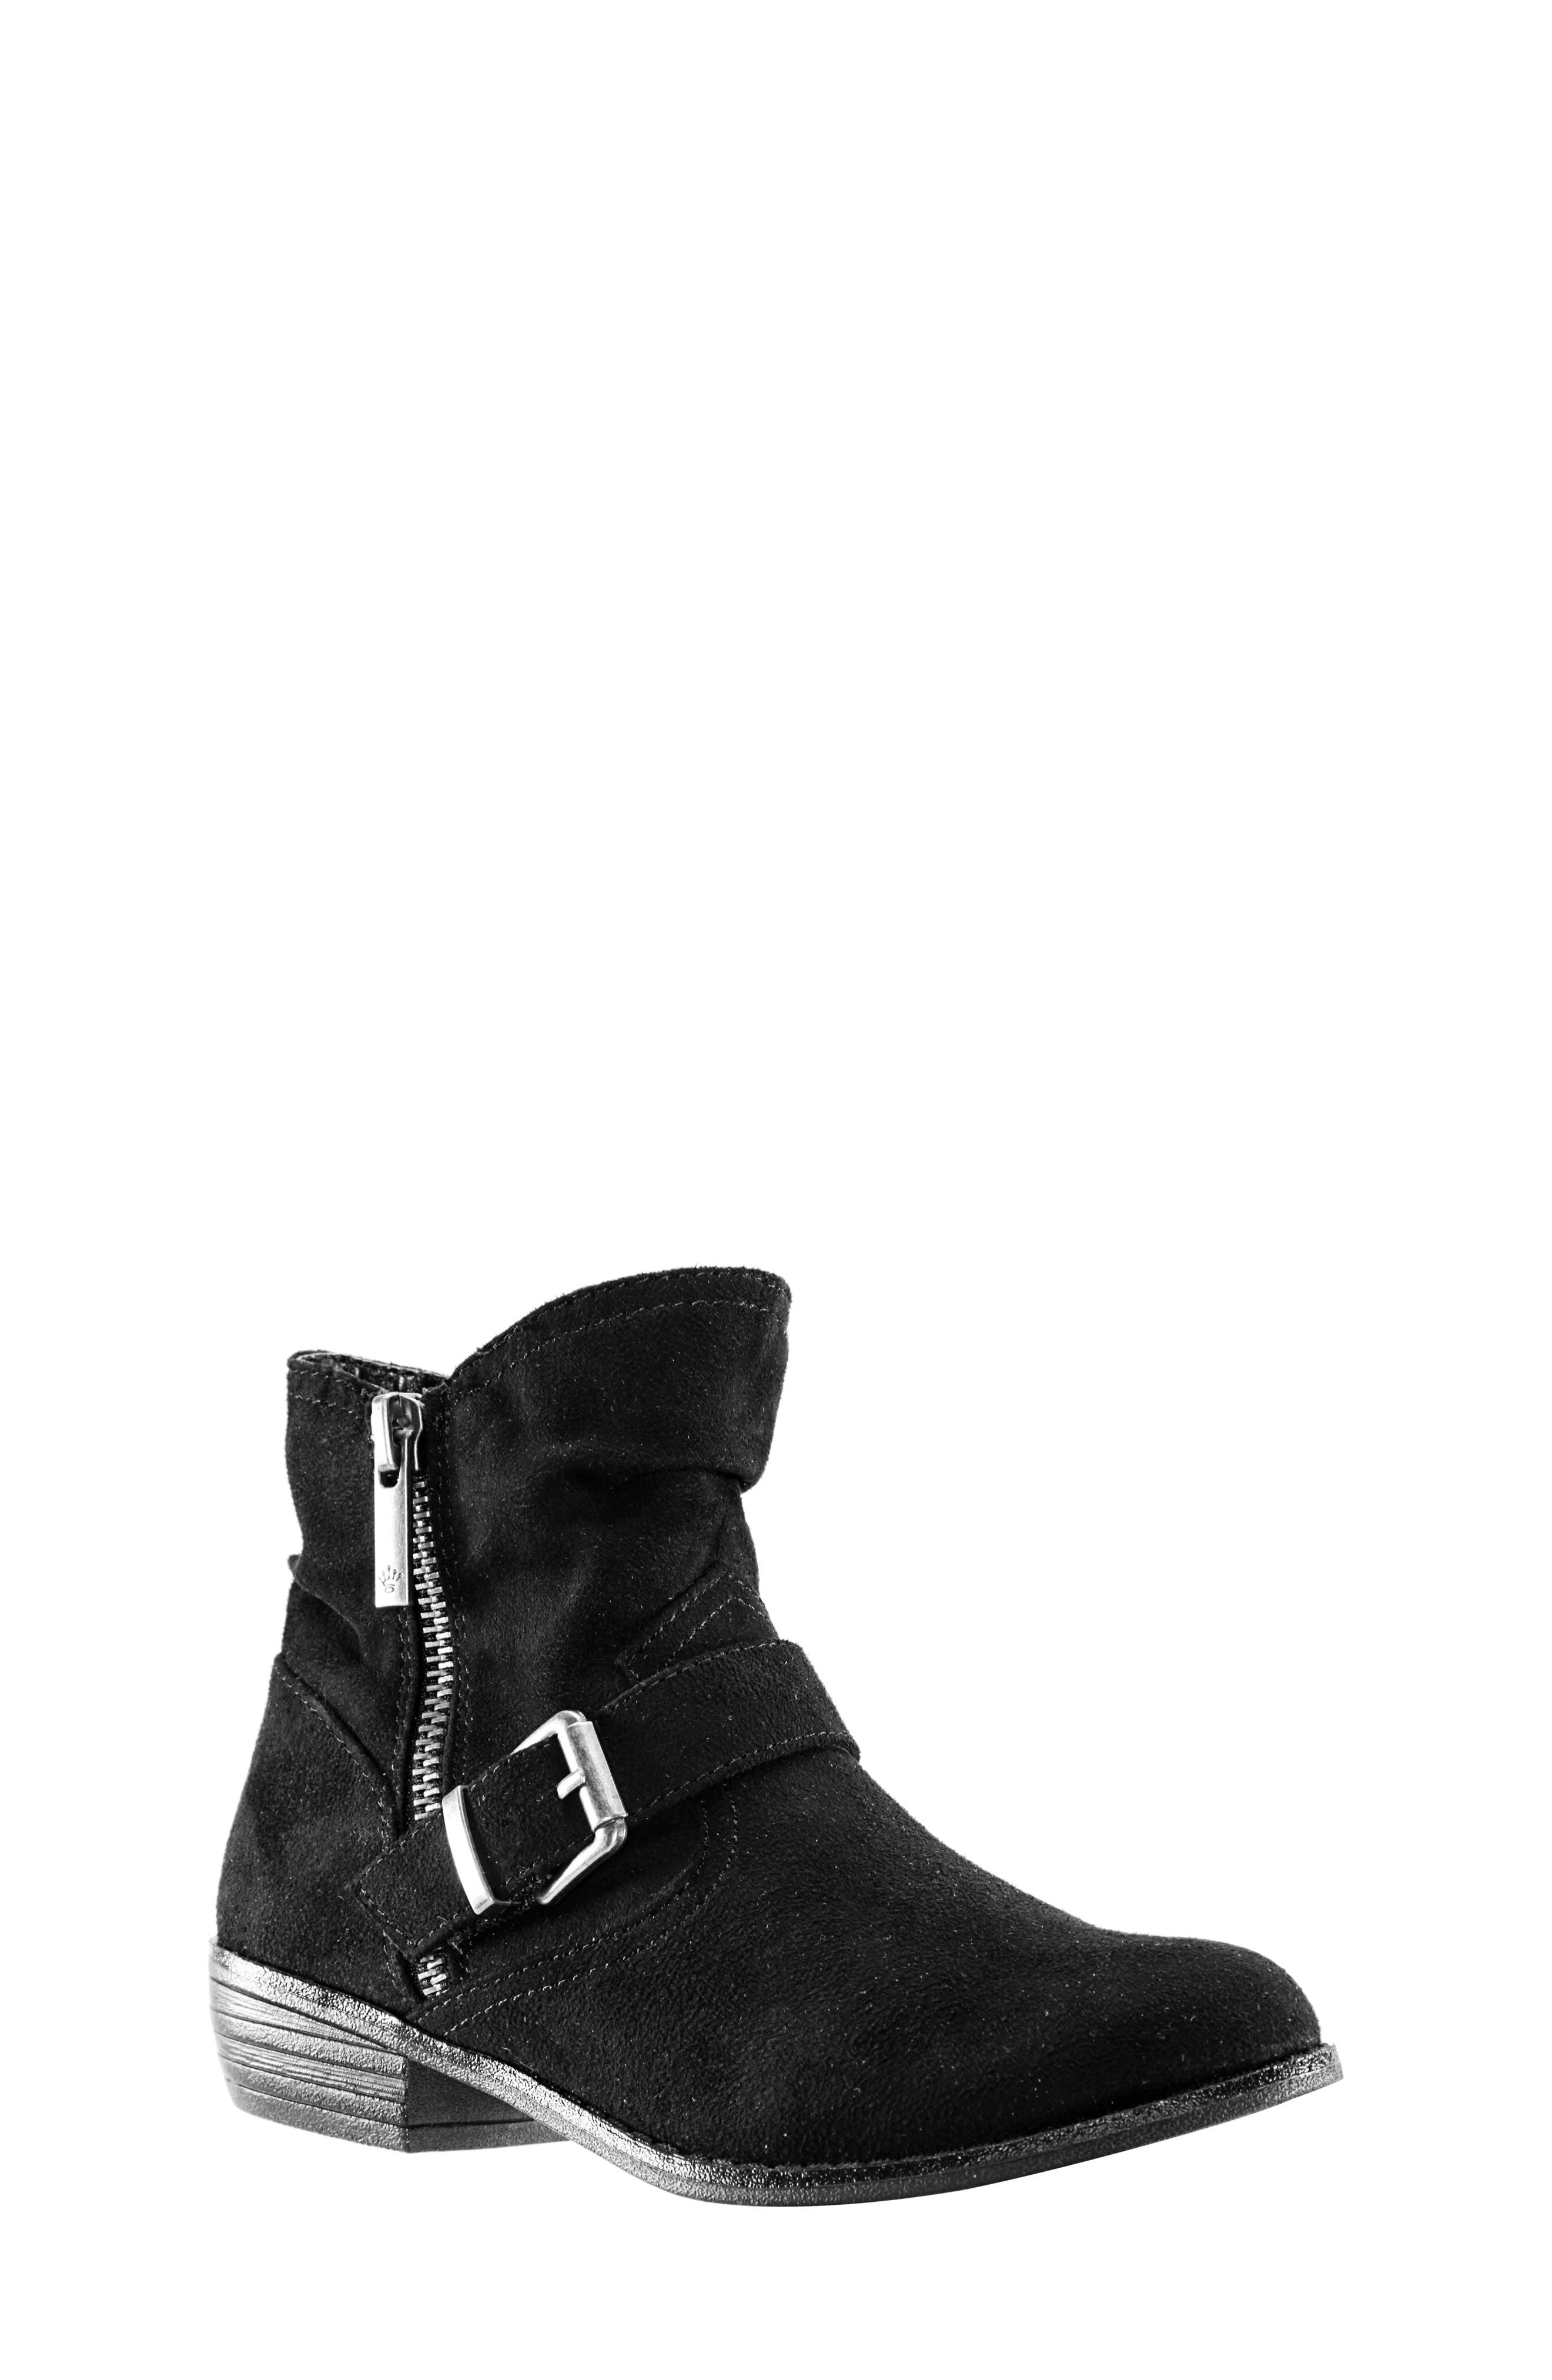 Dorrie Moto Bootie,                             Main thumbnail 1, color,                             BLACK BURNISHED